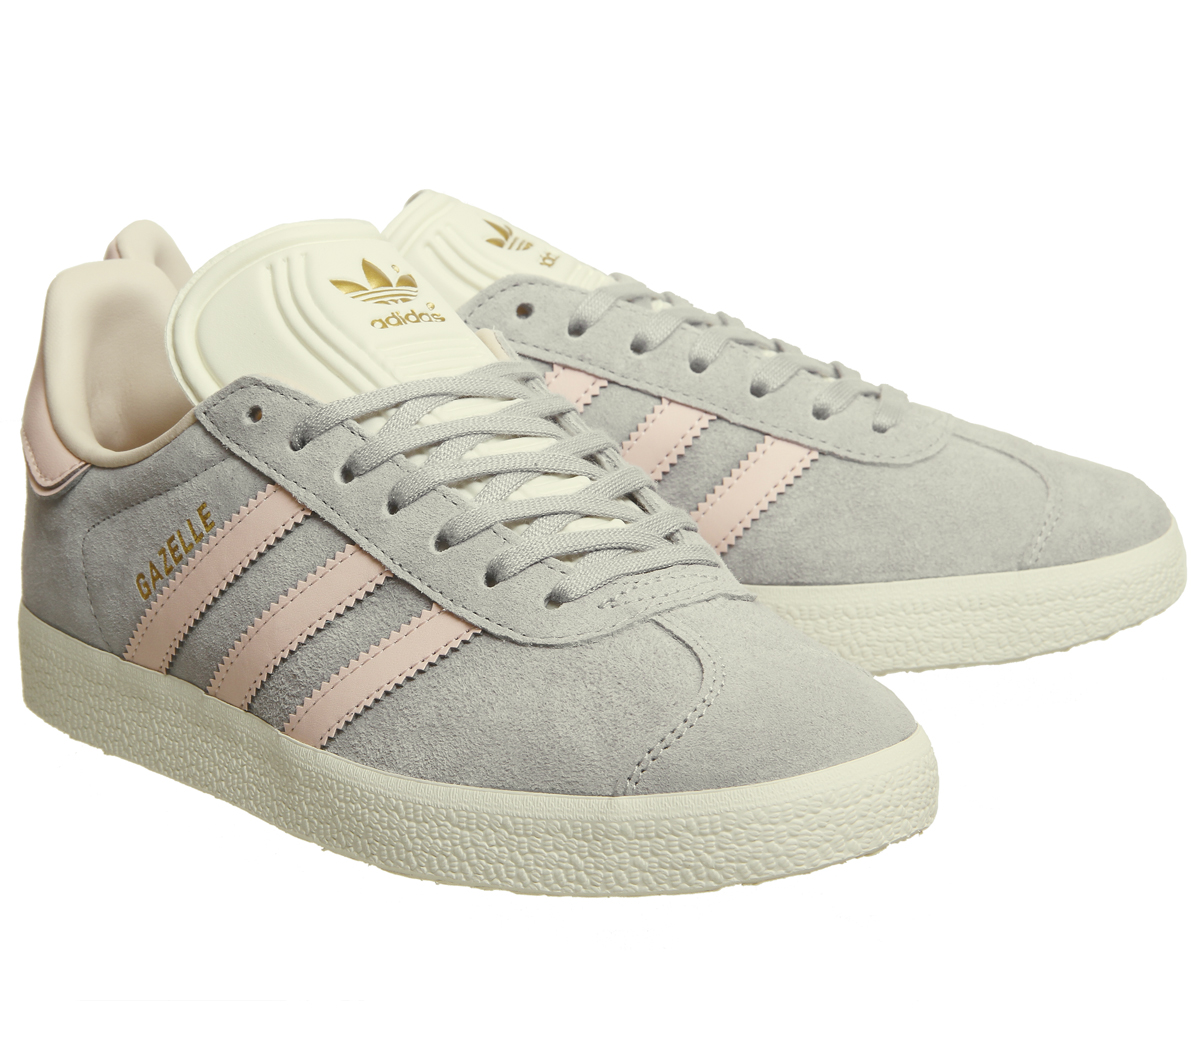 Womens Adidas Gazelle Trainers Grey Two Icey Pink Cream White ... 7aebfeb3354a